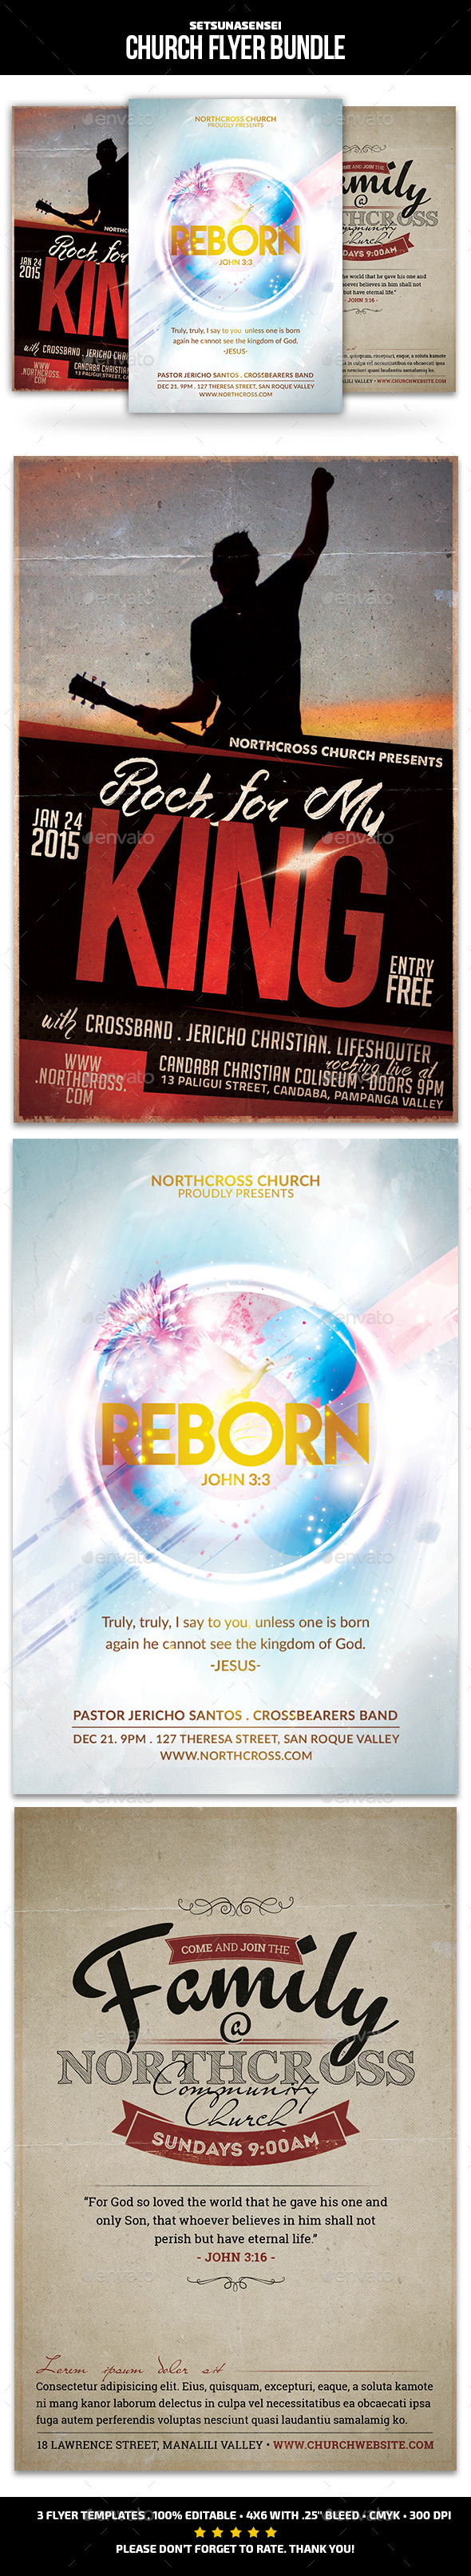 Church Flyer Bundle - Church Flyers